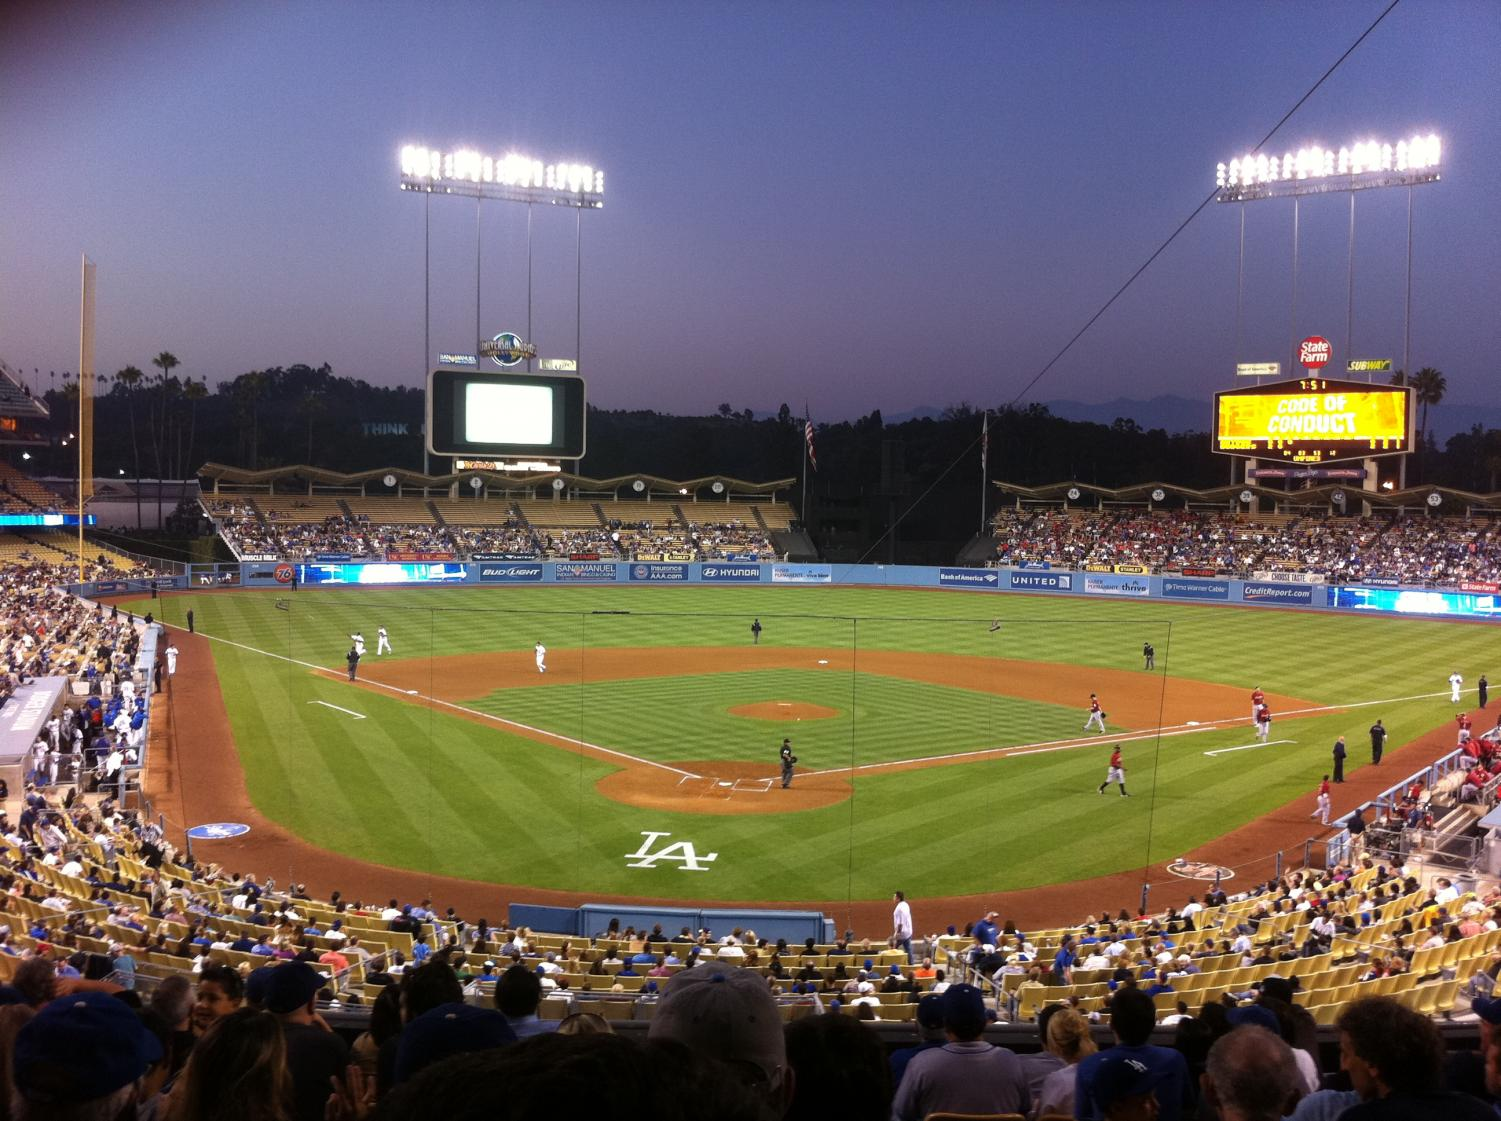 Seen here is Dodger Stadium where two of the six grand slams were hit on May 21, 2000.